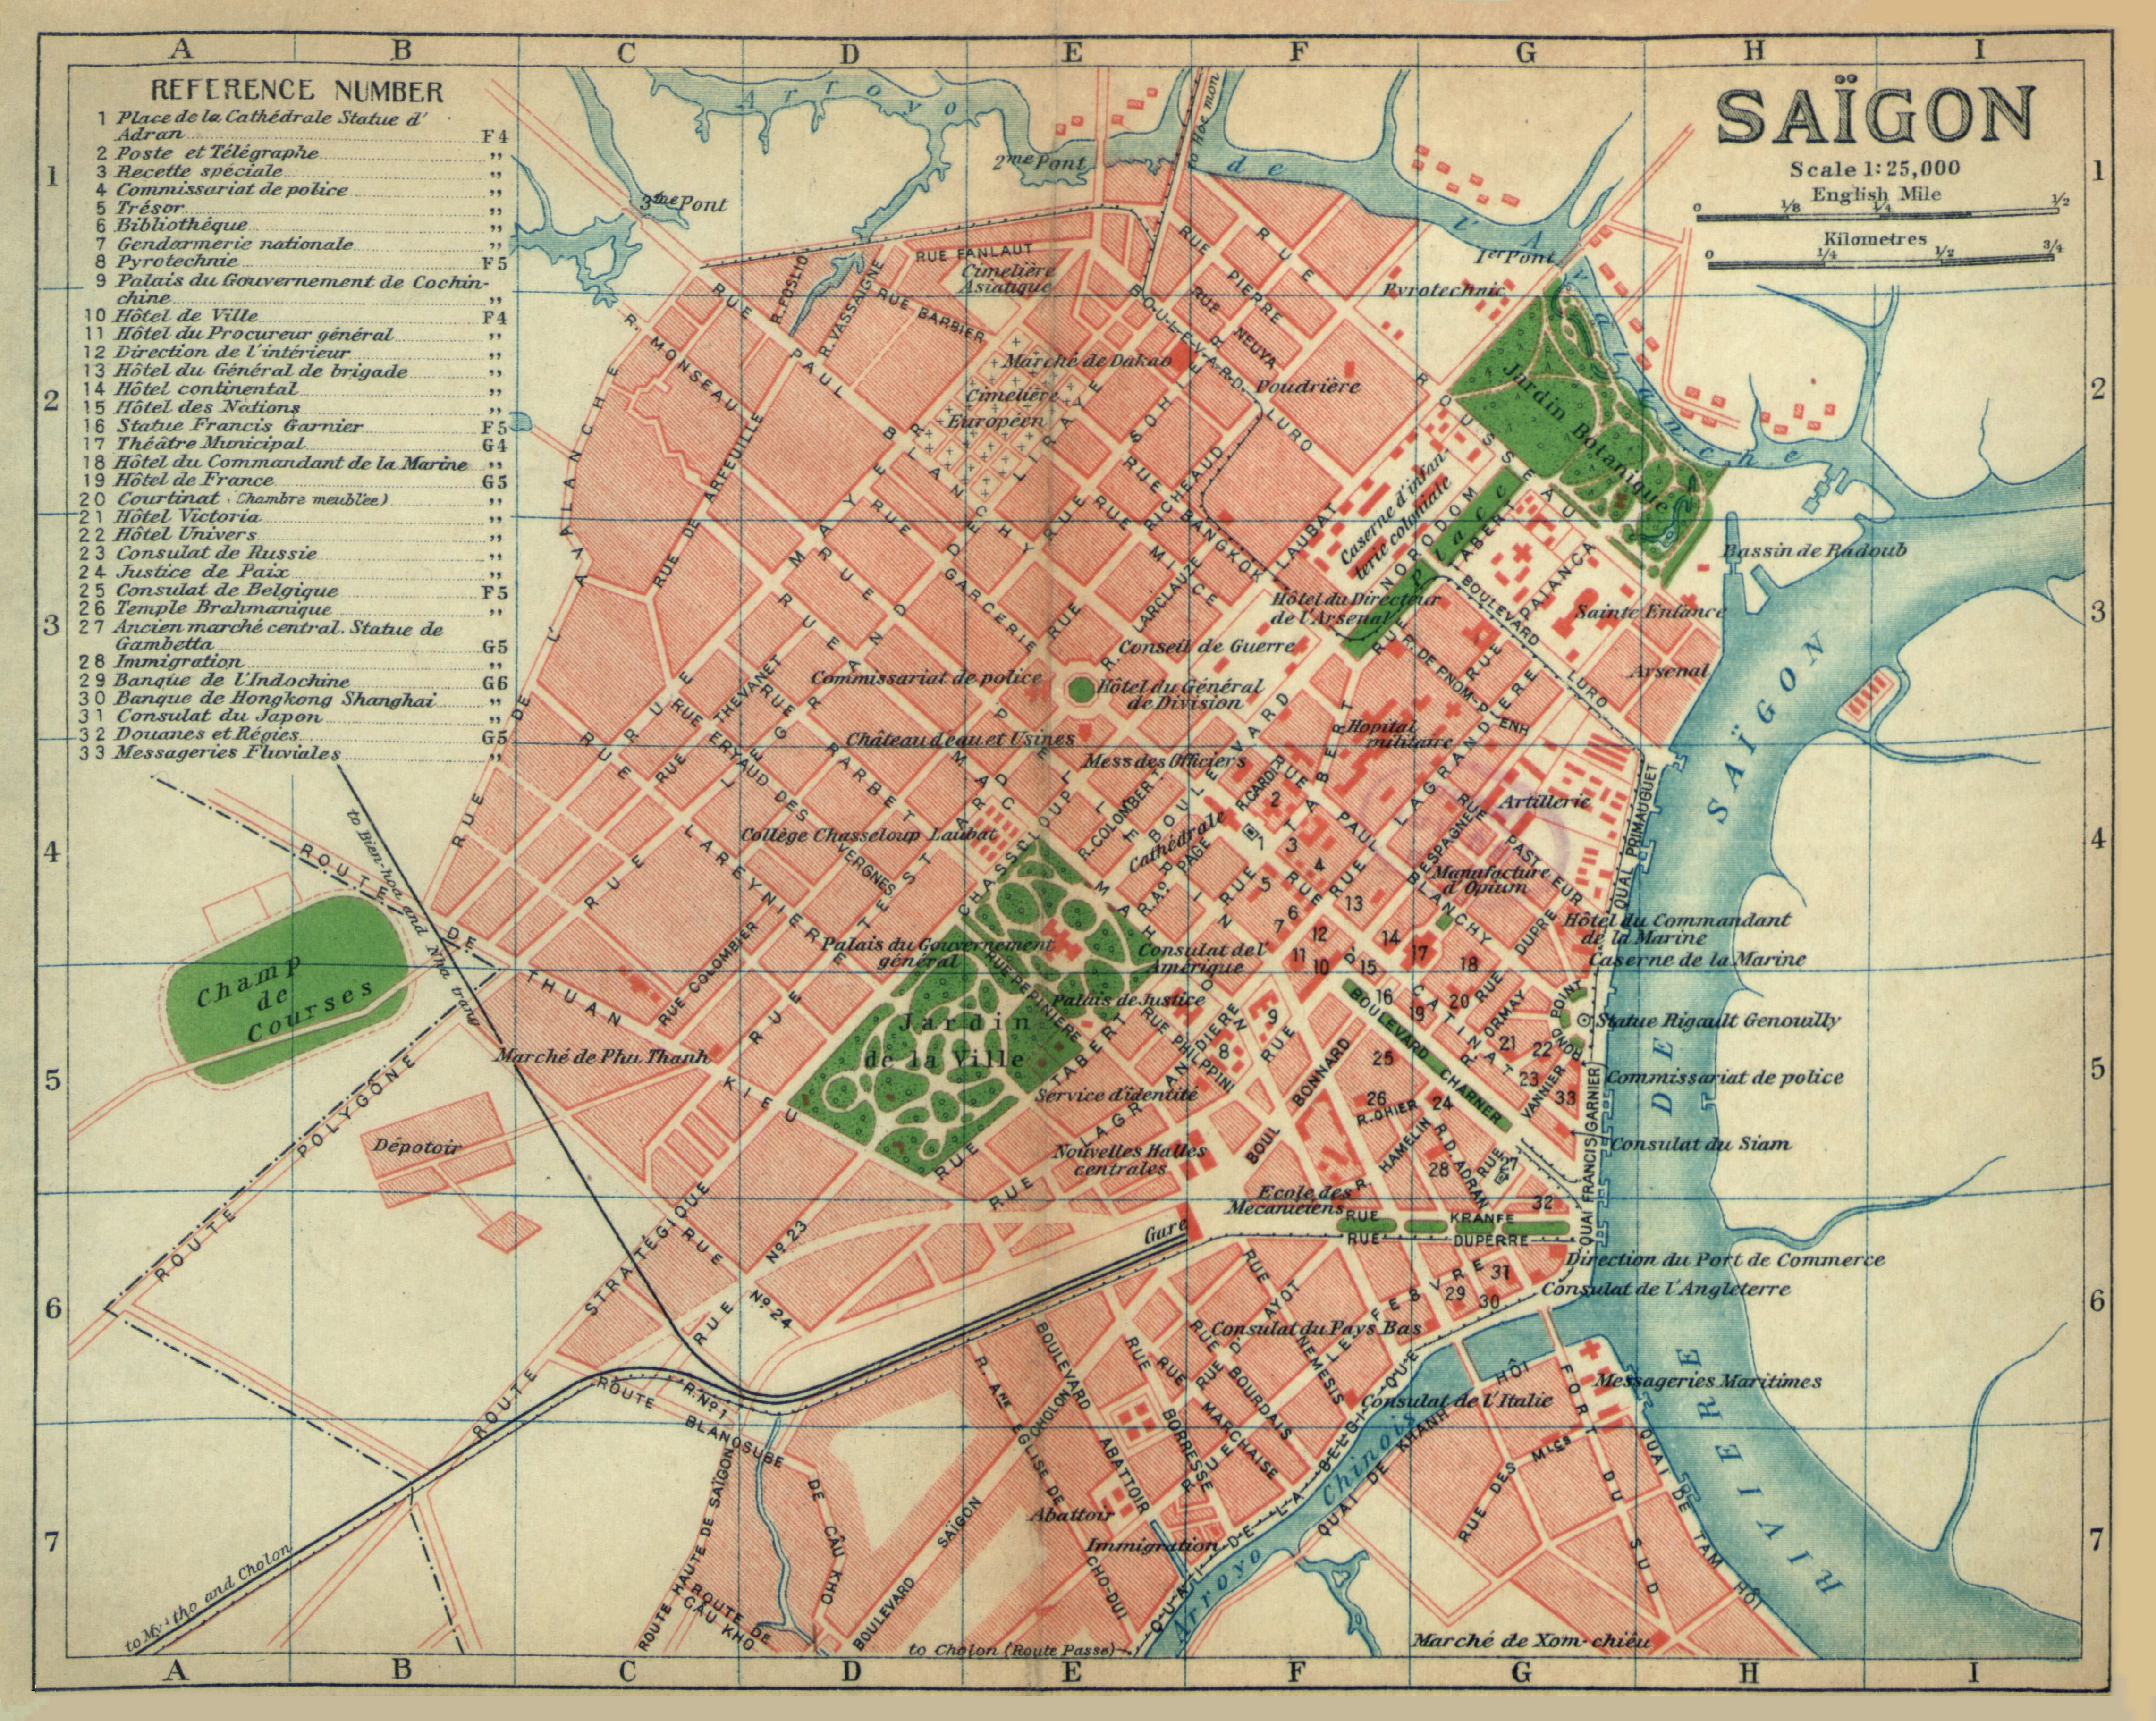 http://upload.wikimedia.org/wikipedia/commons/c/c4/Saigon_map_1920.jpg